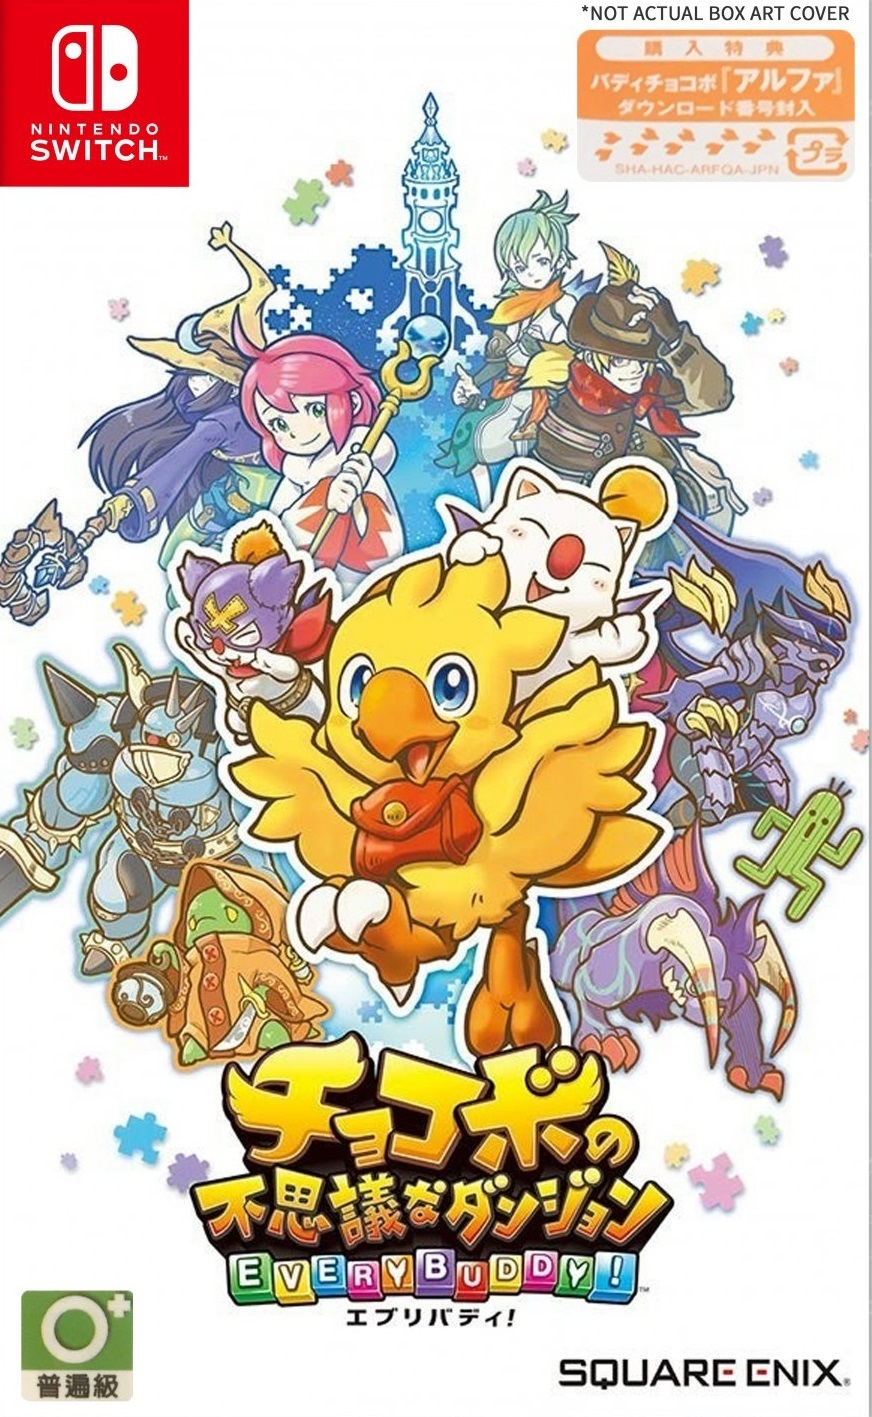 chocobos-mystery-dungeon-every-buddy-multilanguage-573773.21.jpg